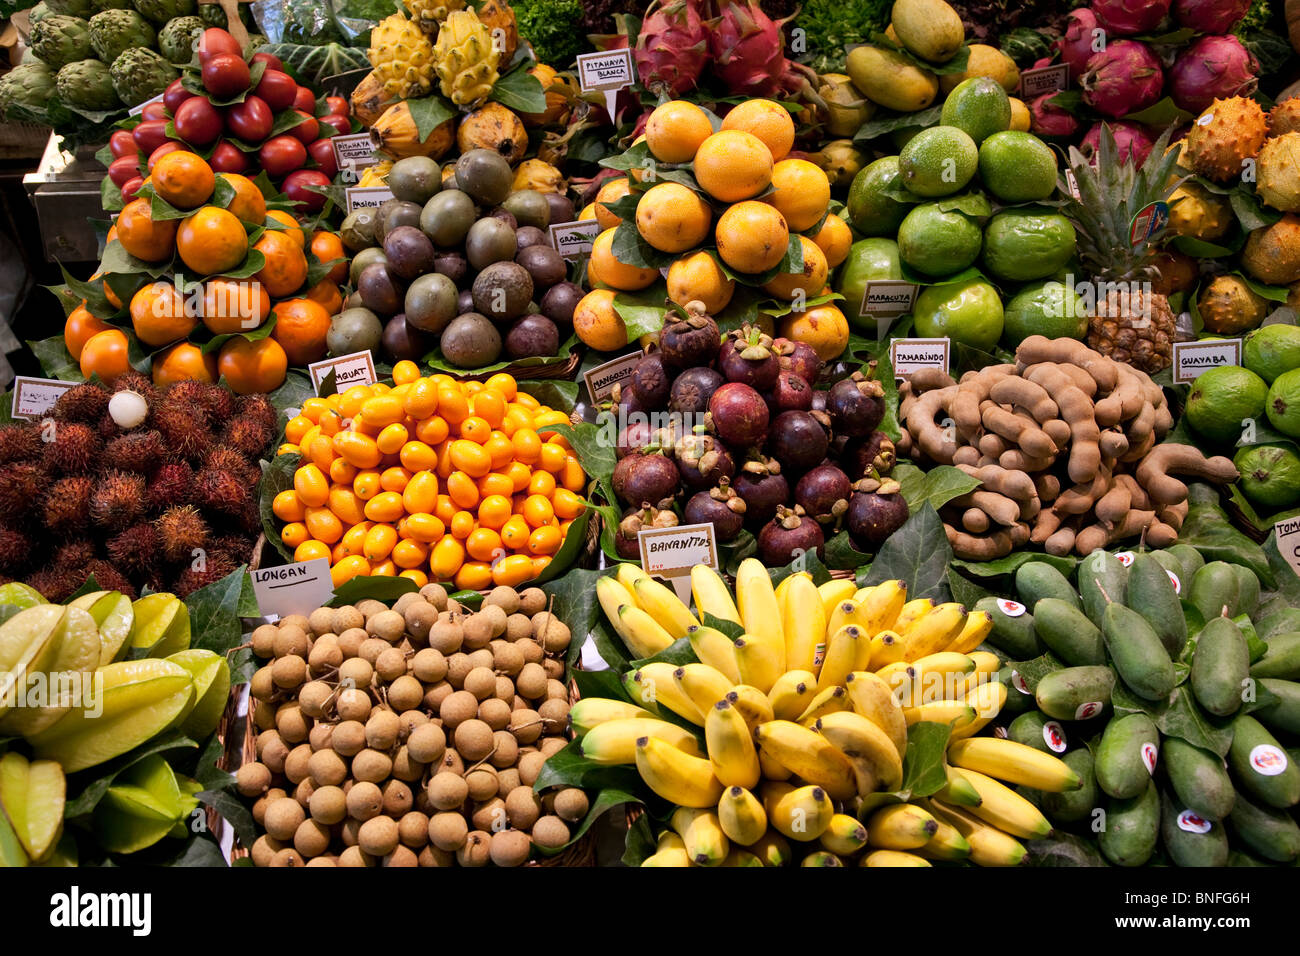 exotic fruits la boqueria market barcelona spain stock photo royalty free image 30460153. Black Bedroom Furniture Sets. Home Design Ideas